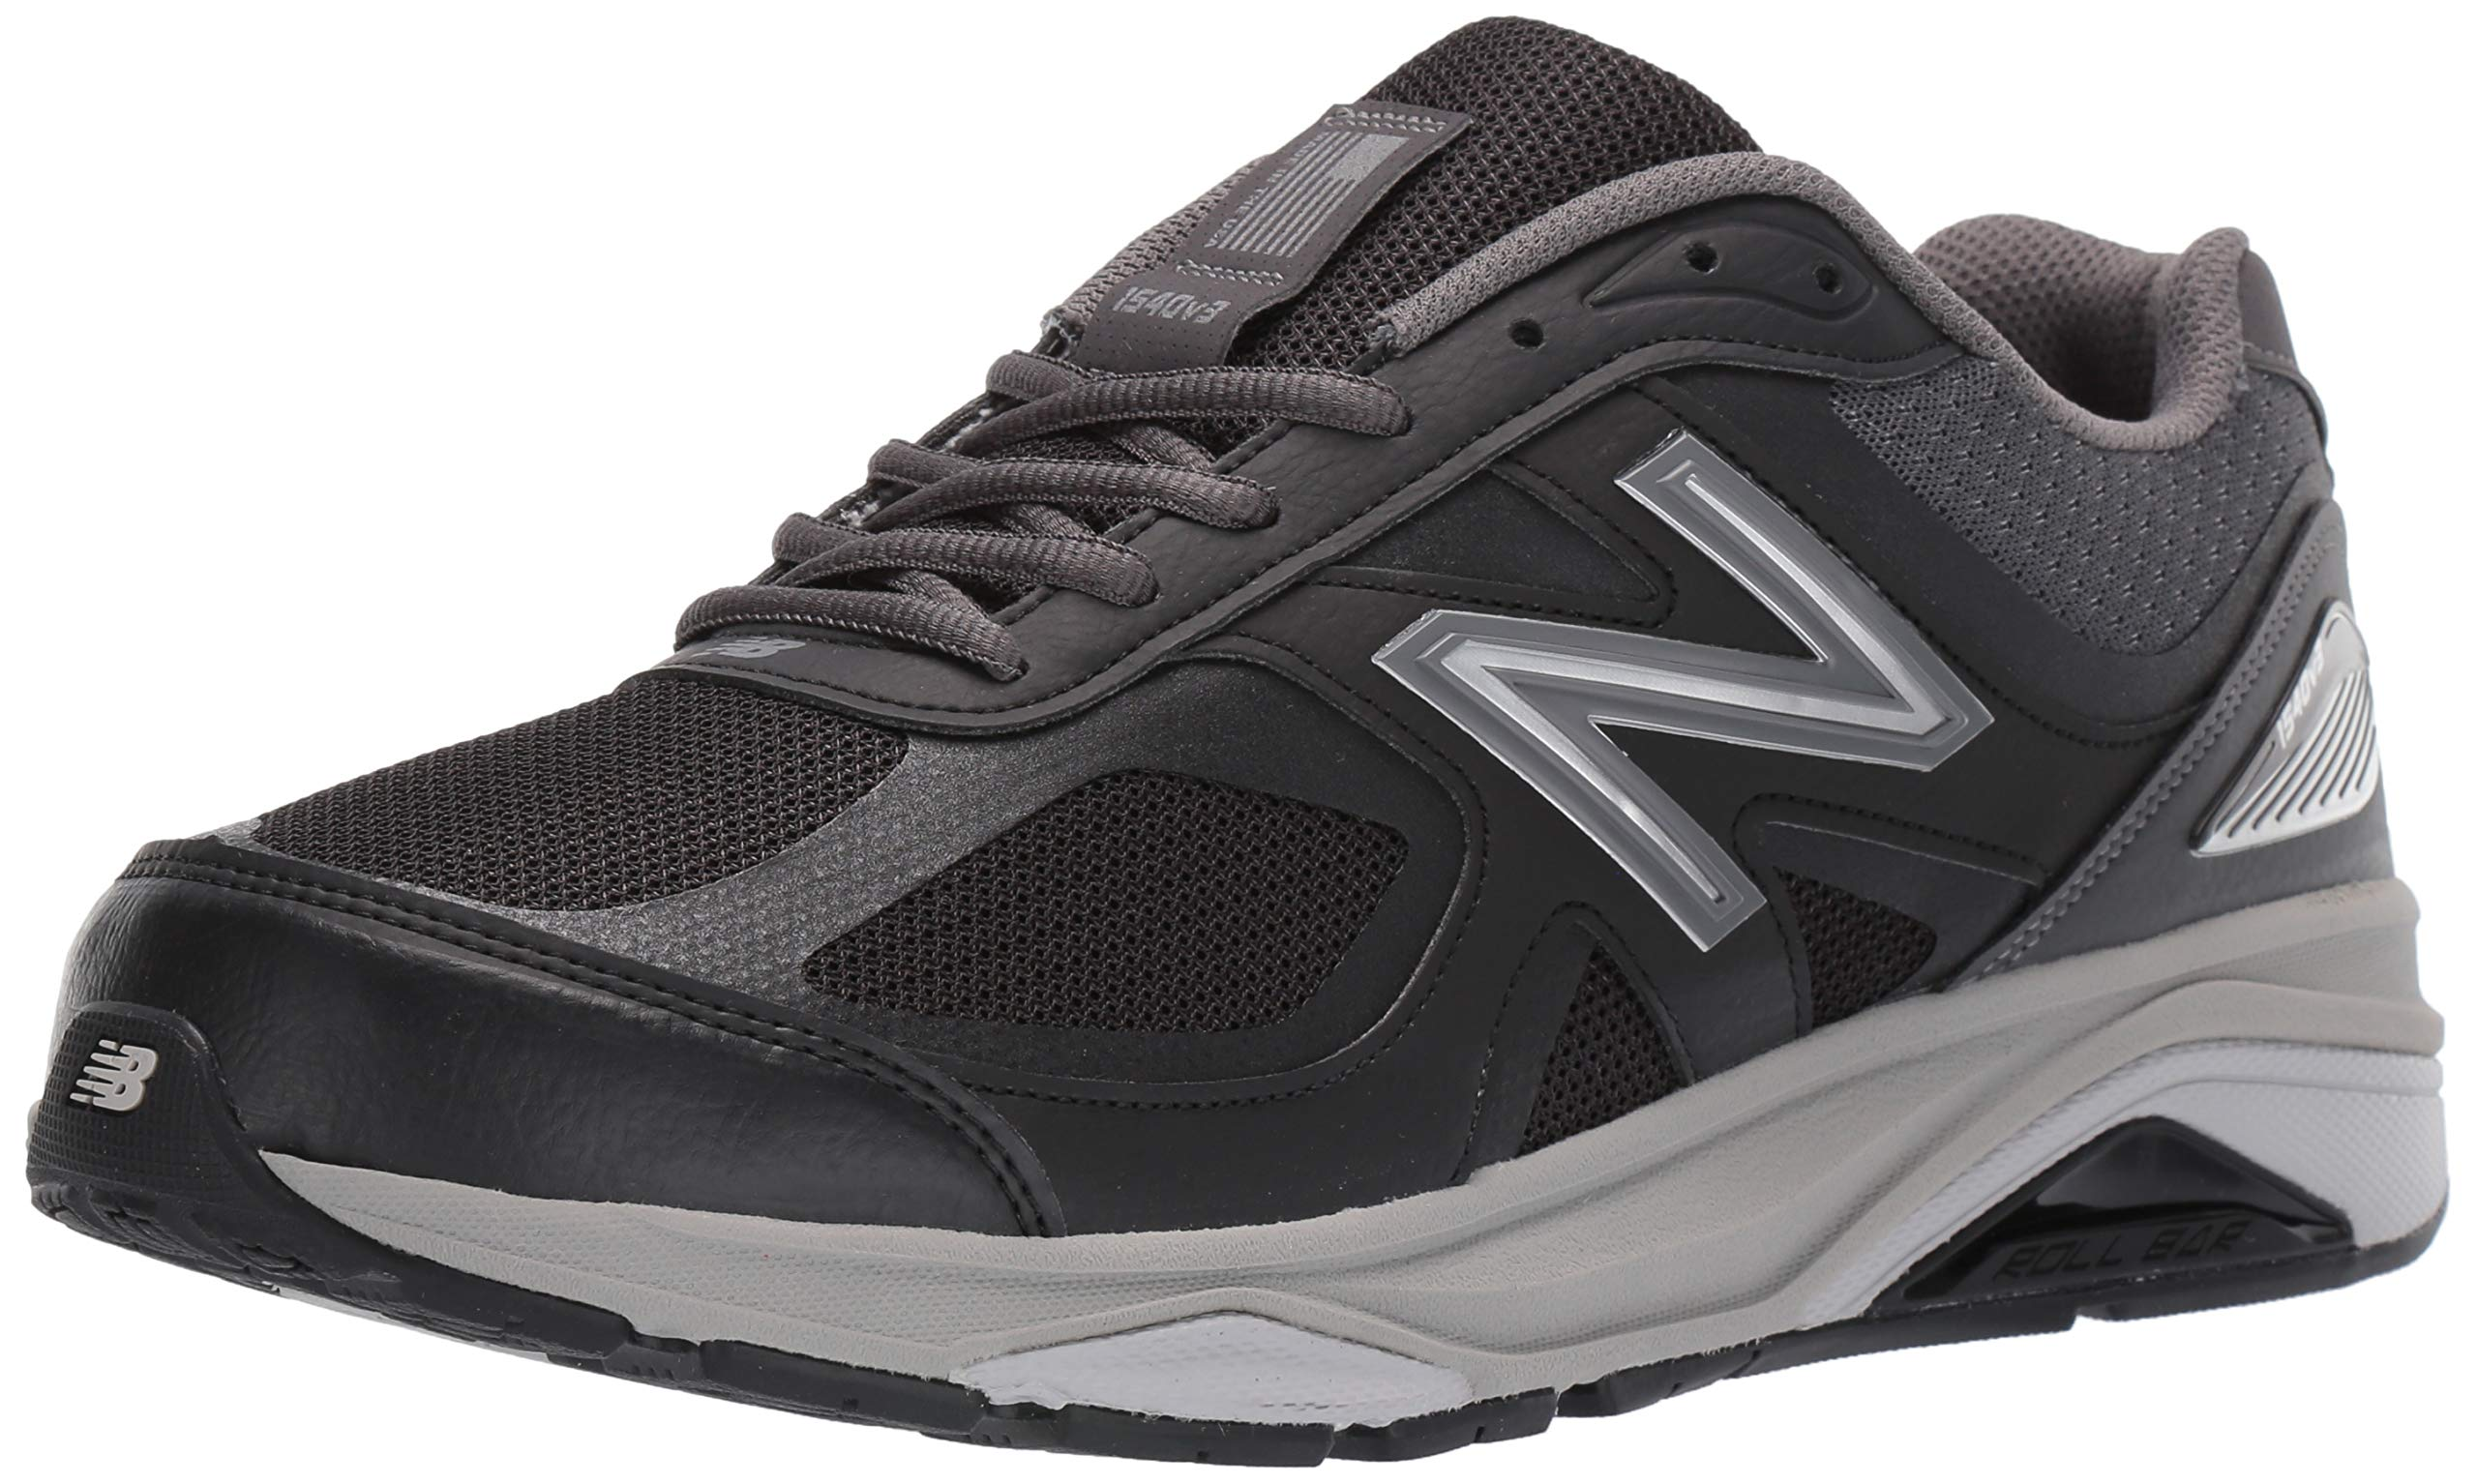 New Balance Men's 1540v3 Running Shoe, Black/Castlerock, 7.5 M US